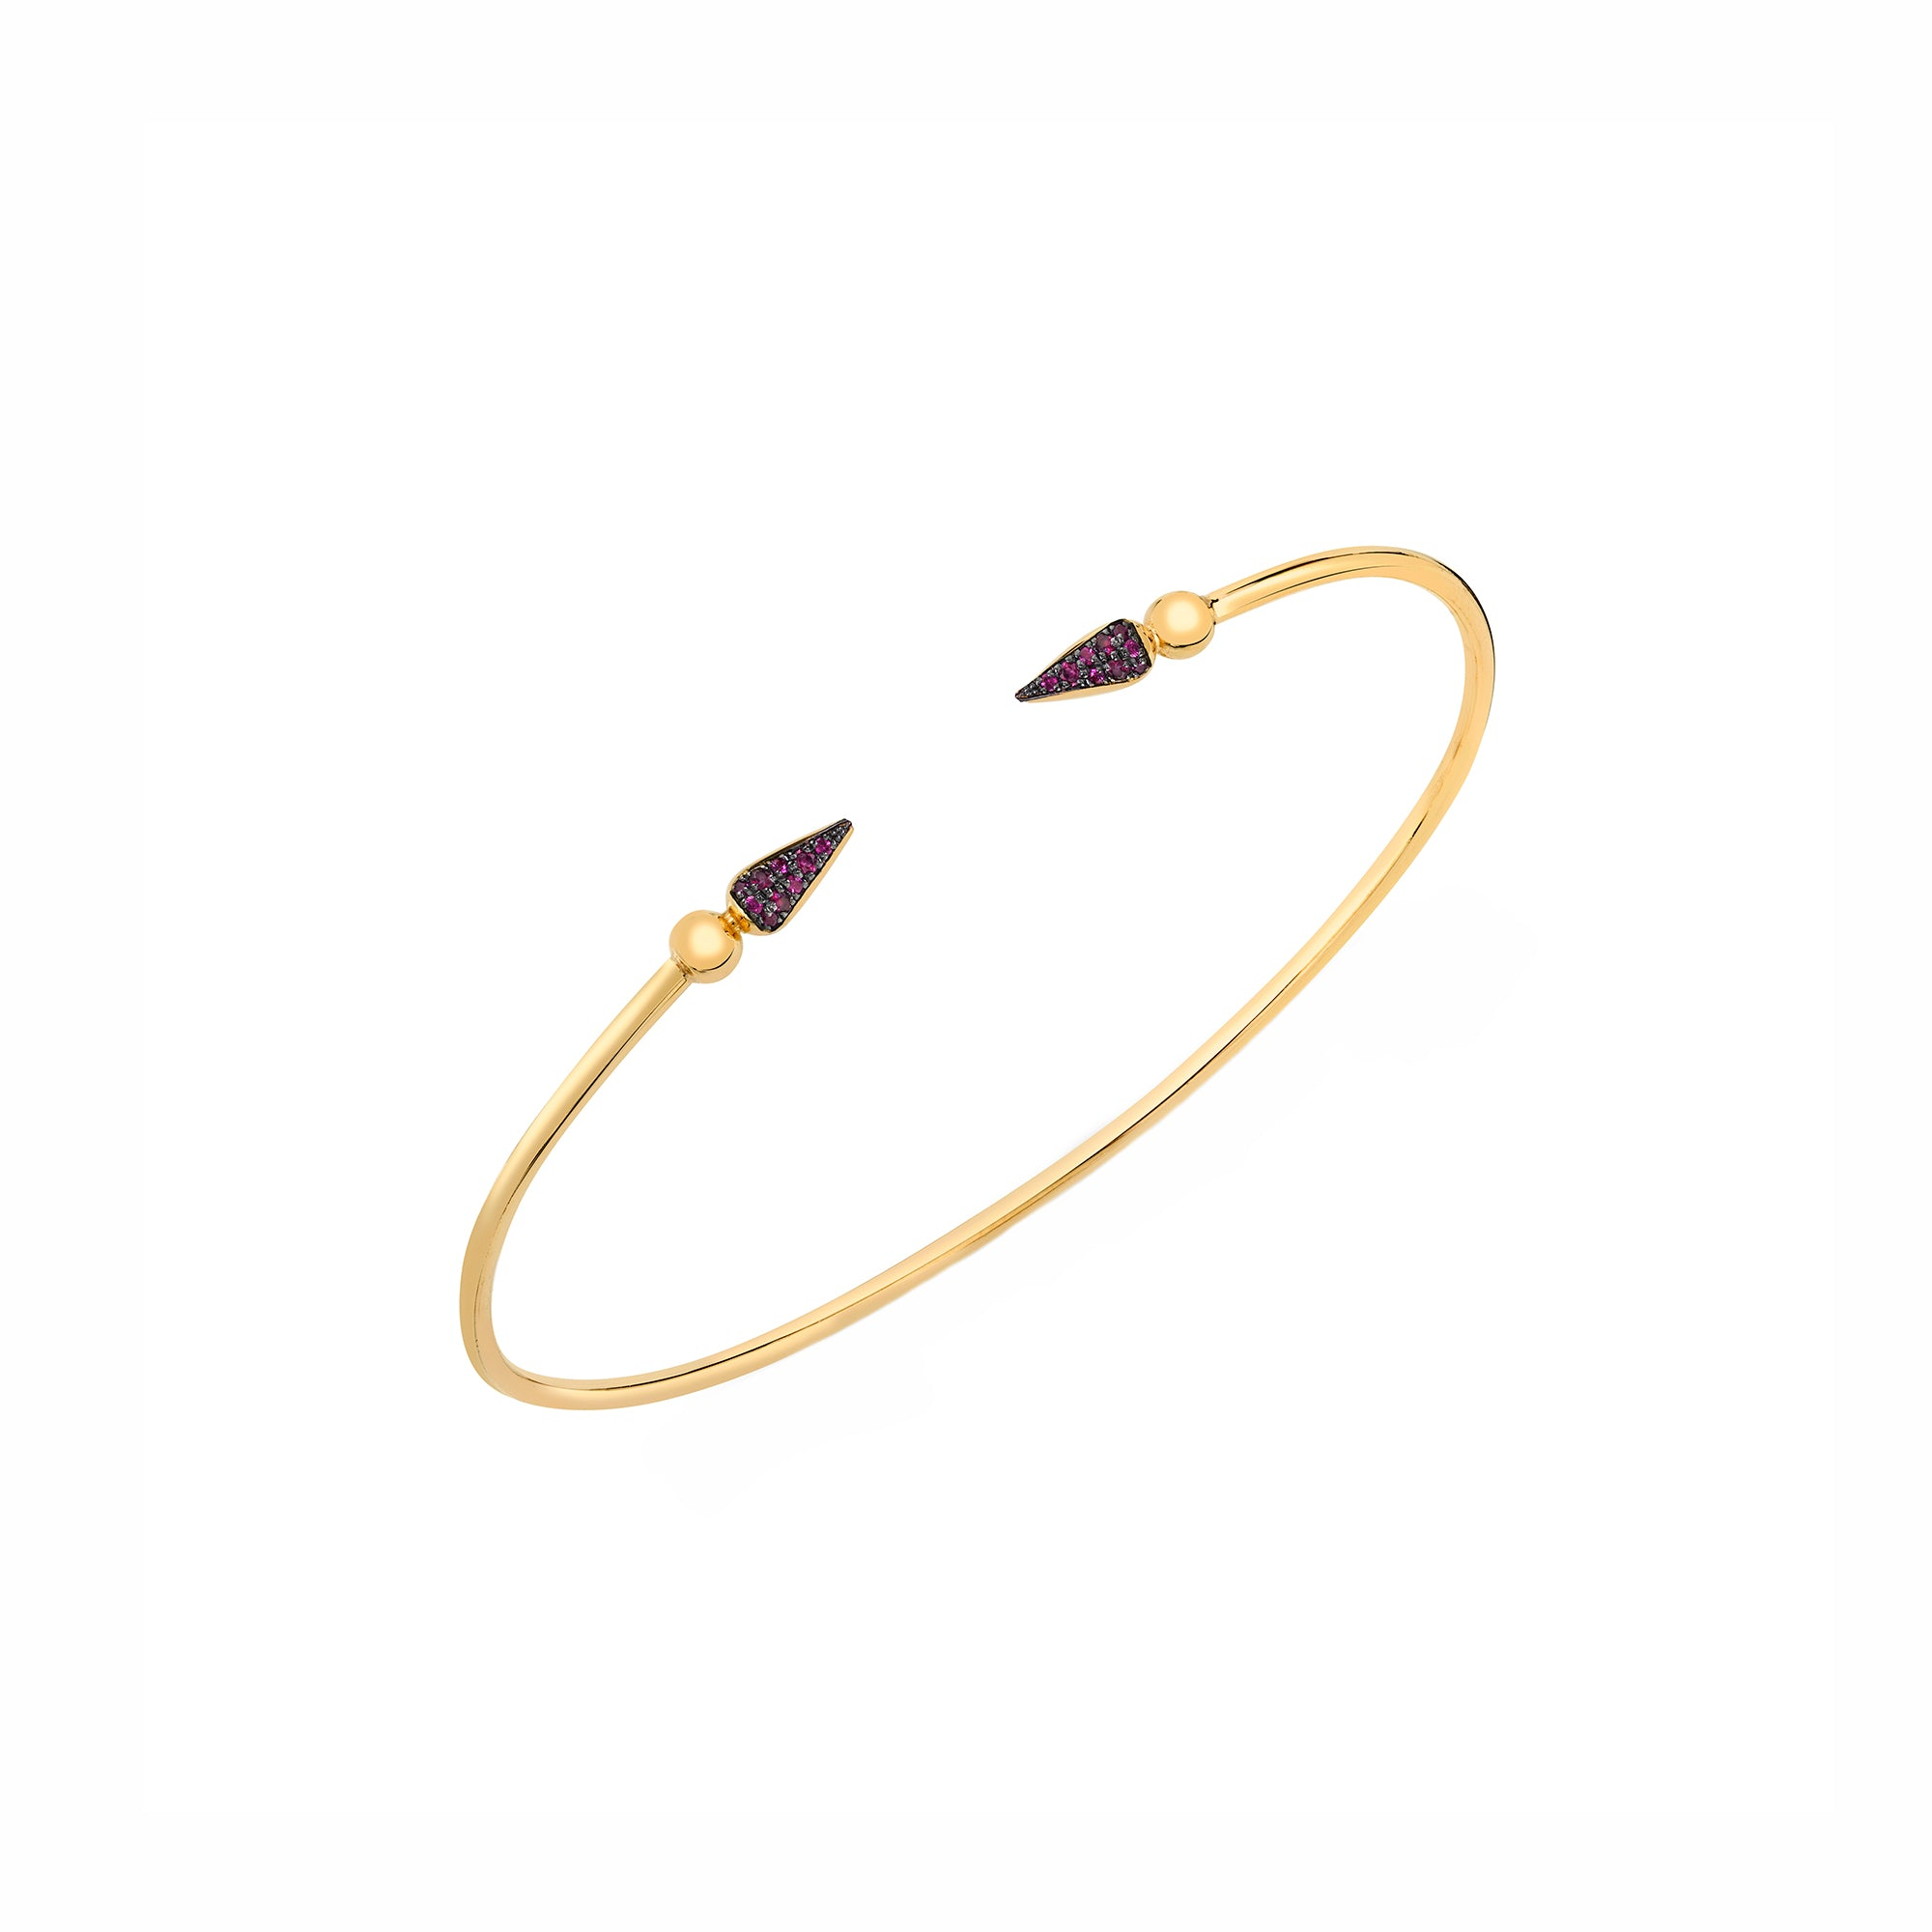 Pave Spear Tip Bangle - Ruby - Sarah Hendler - Bracelets | Broken English Jewelry